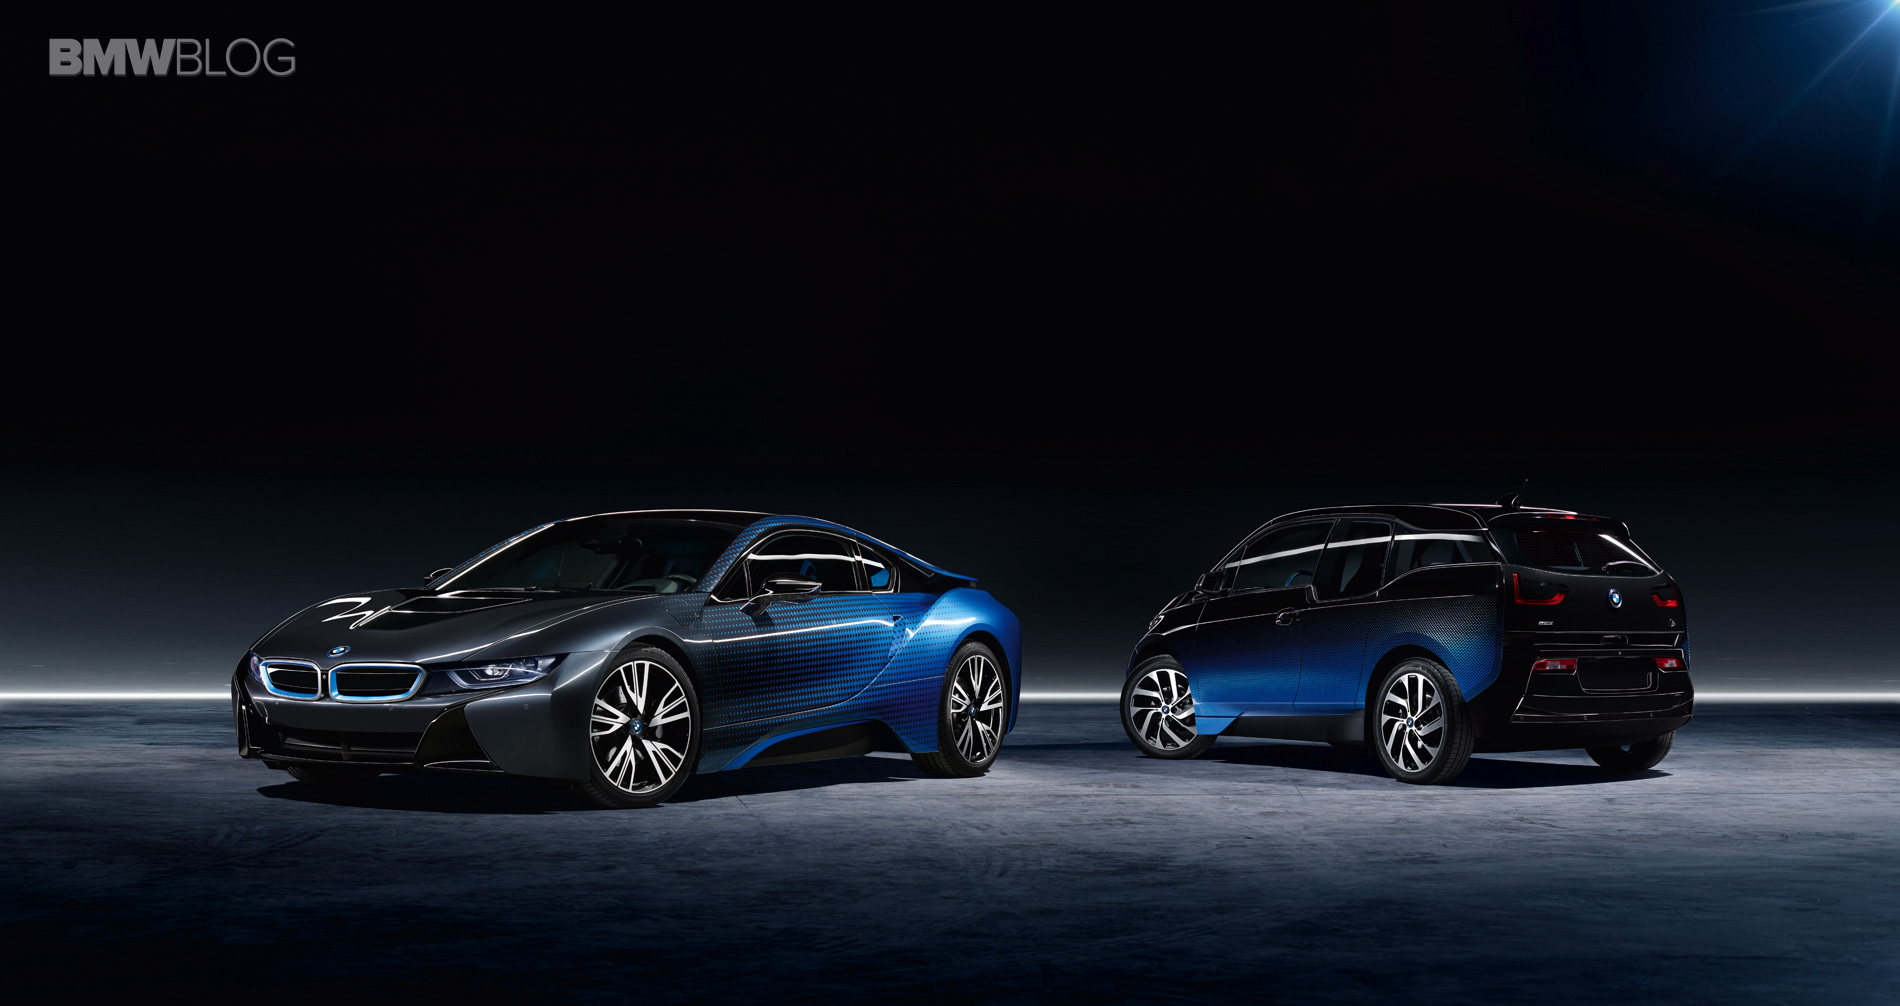 Bmw I3 And The Bmw I8 Garage Italia Crossfade Introduced In Paris